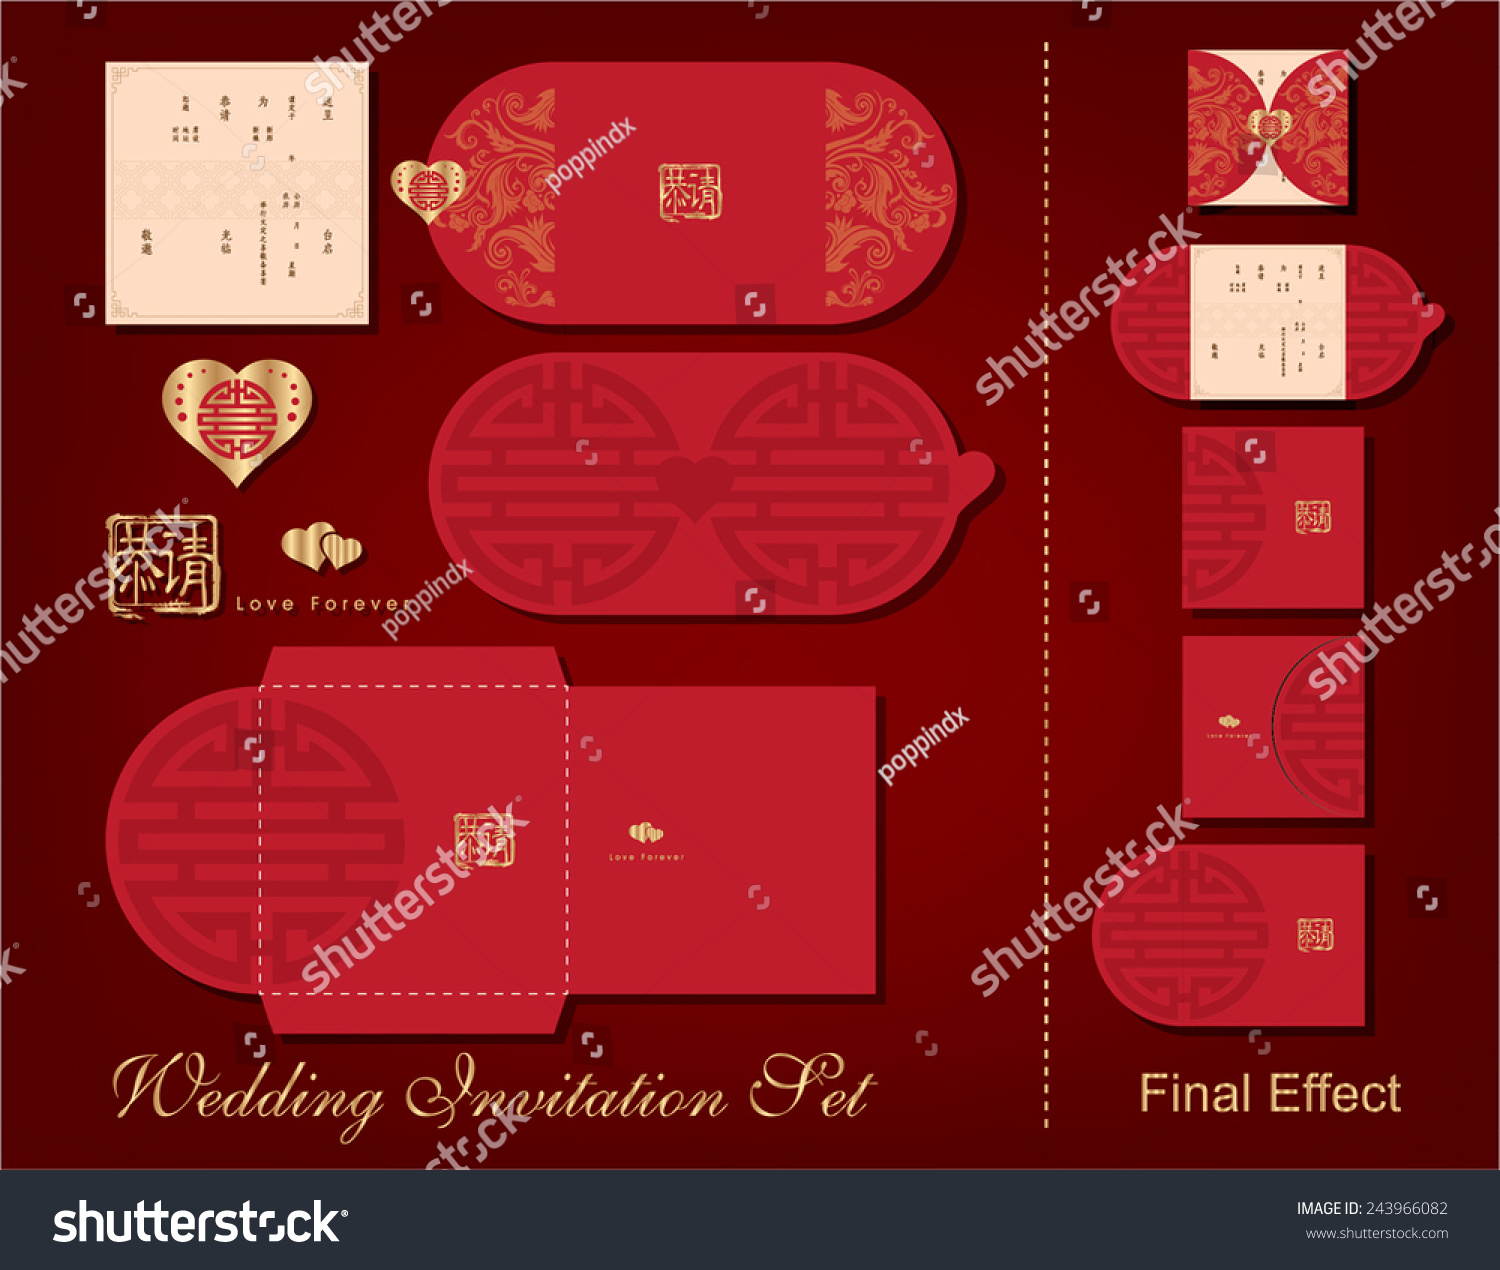 Complete Wedding Invitation Set Include Card Stock Vector 243966082 ...